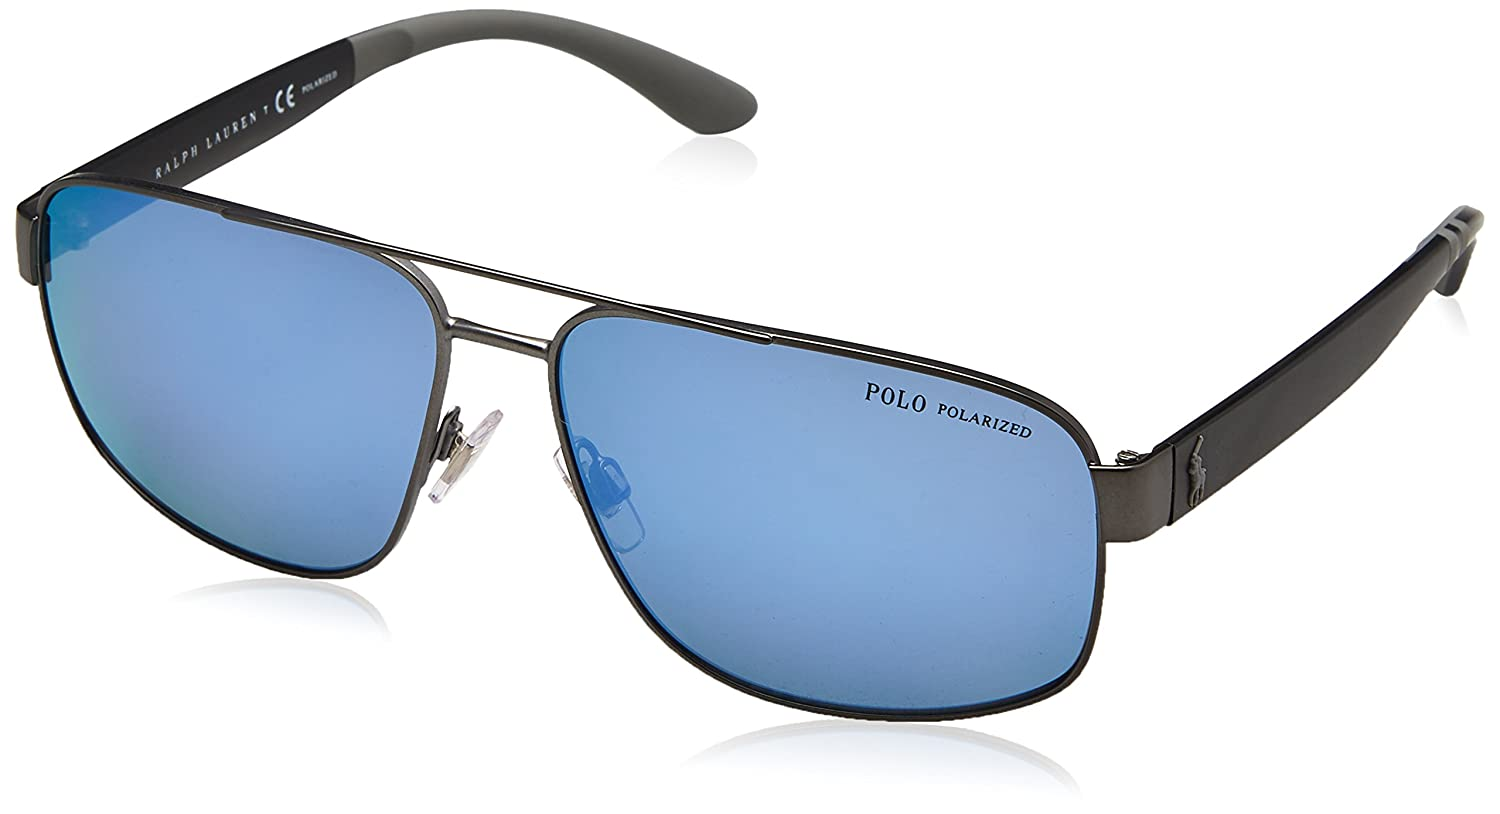 Polo Ralph Lauren 0PH3112, Gafas de Sol para Hombre: Amazon ...